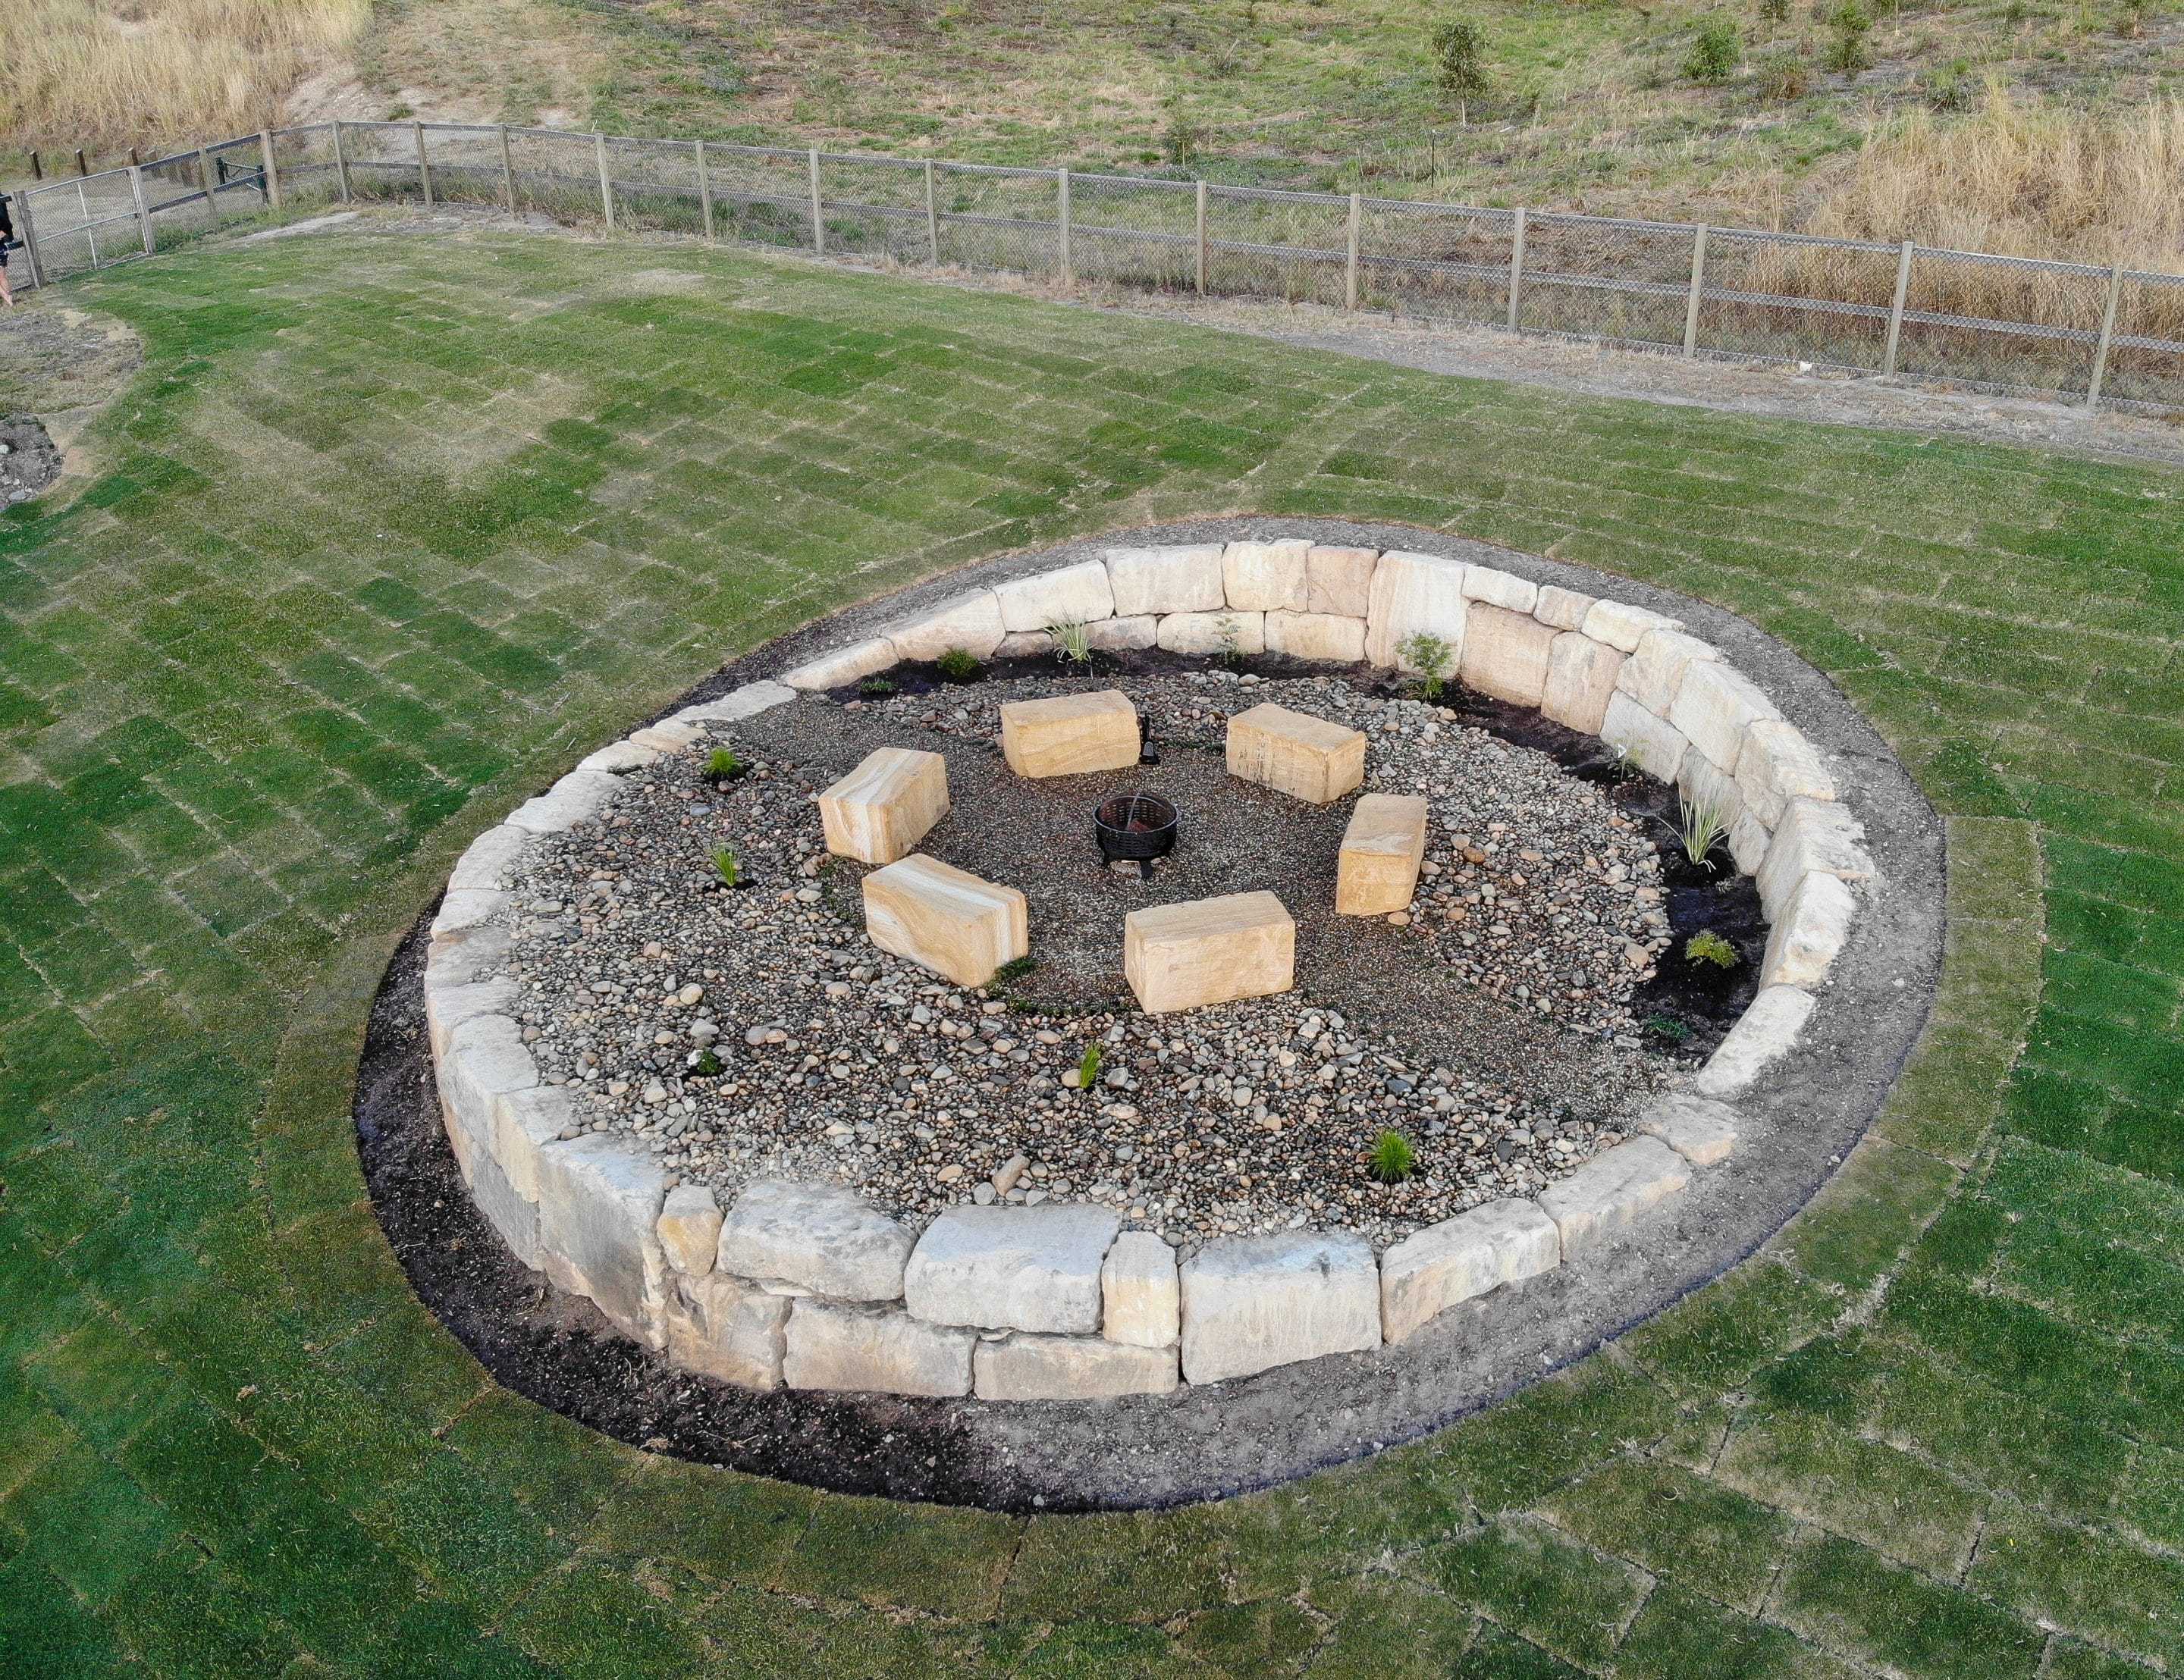 C grade sandstone retaining wall with free-standing sandstone seating, sandstone fire pit